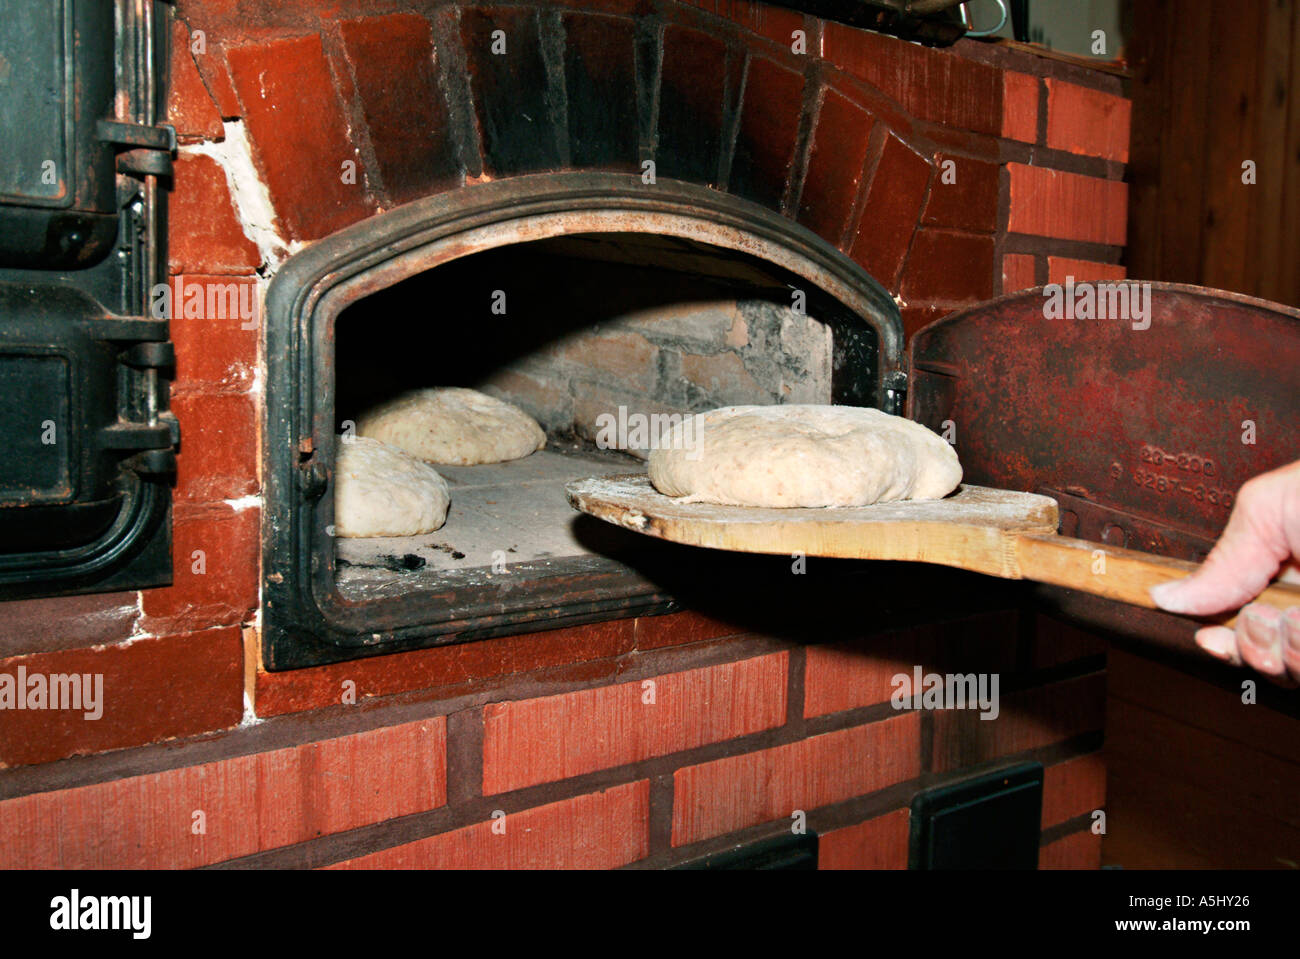 PR getting loaves of bread in an old stove made of stone - Stock Image